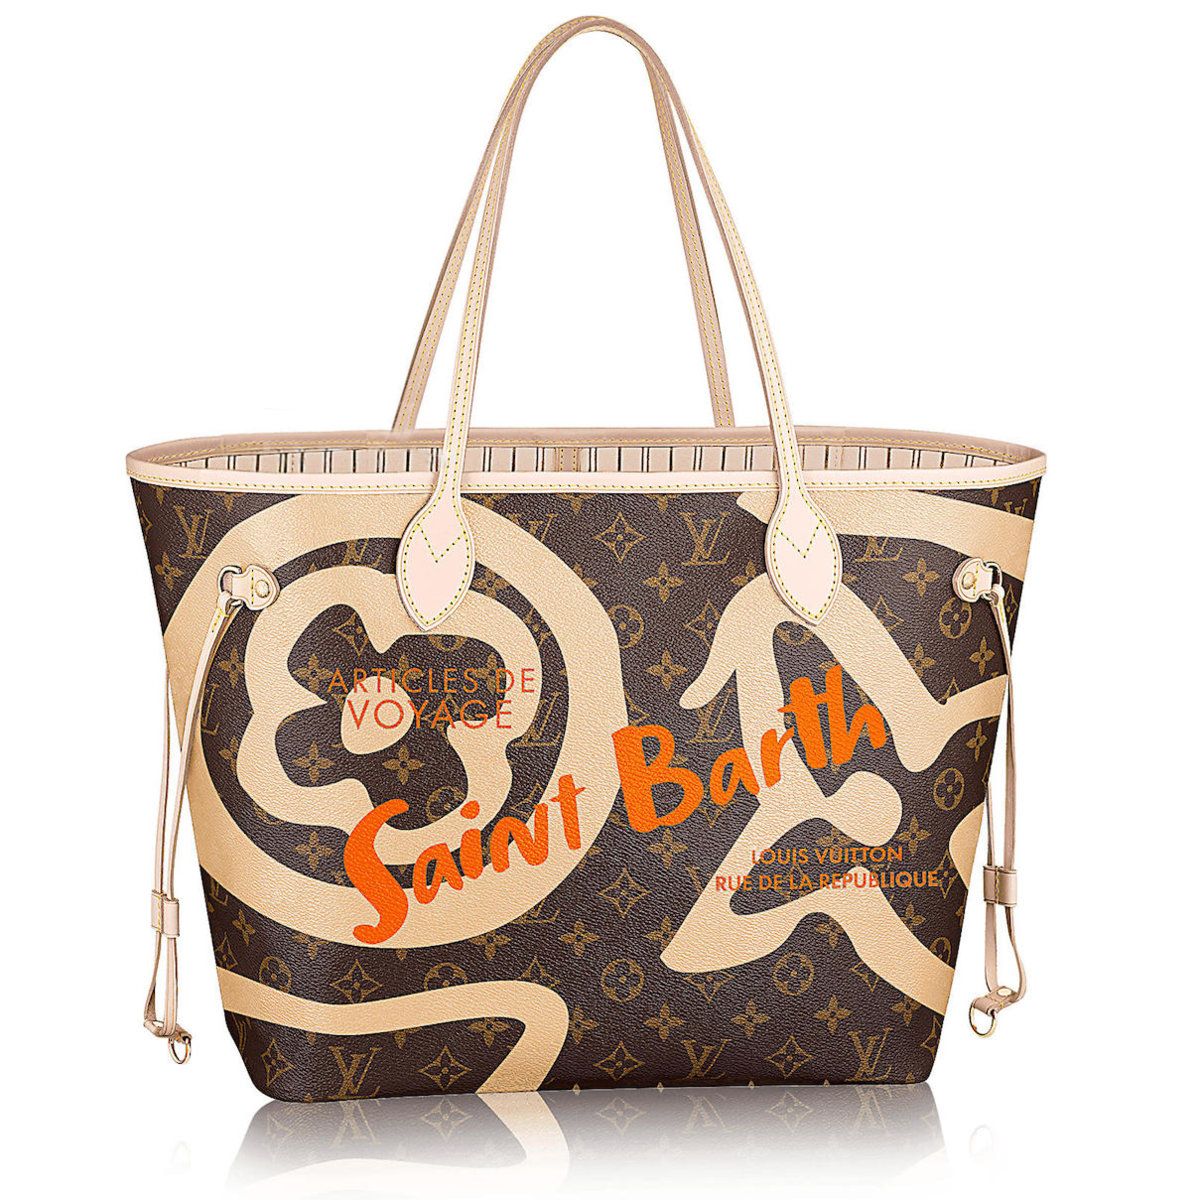 30c908e518d8 Louis Vuitton St Barts Limited Edition Neverfull Tote